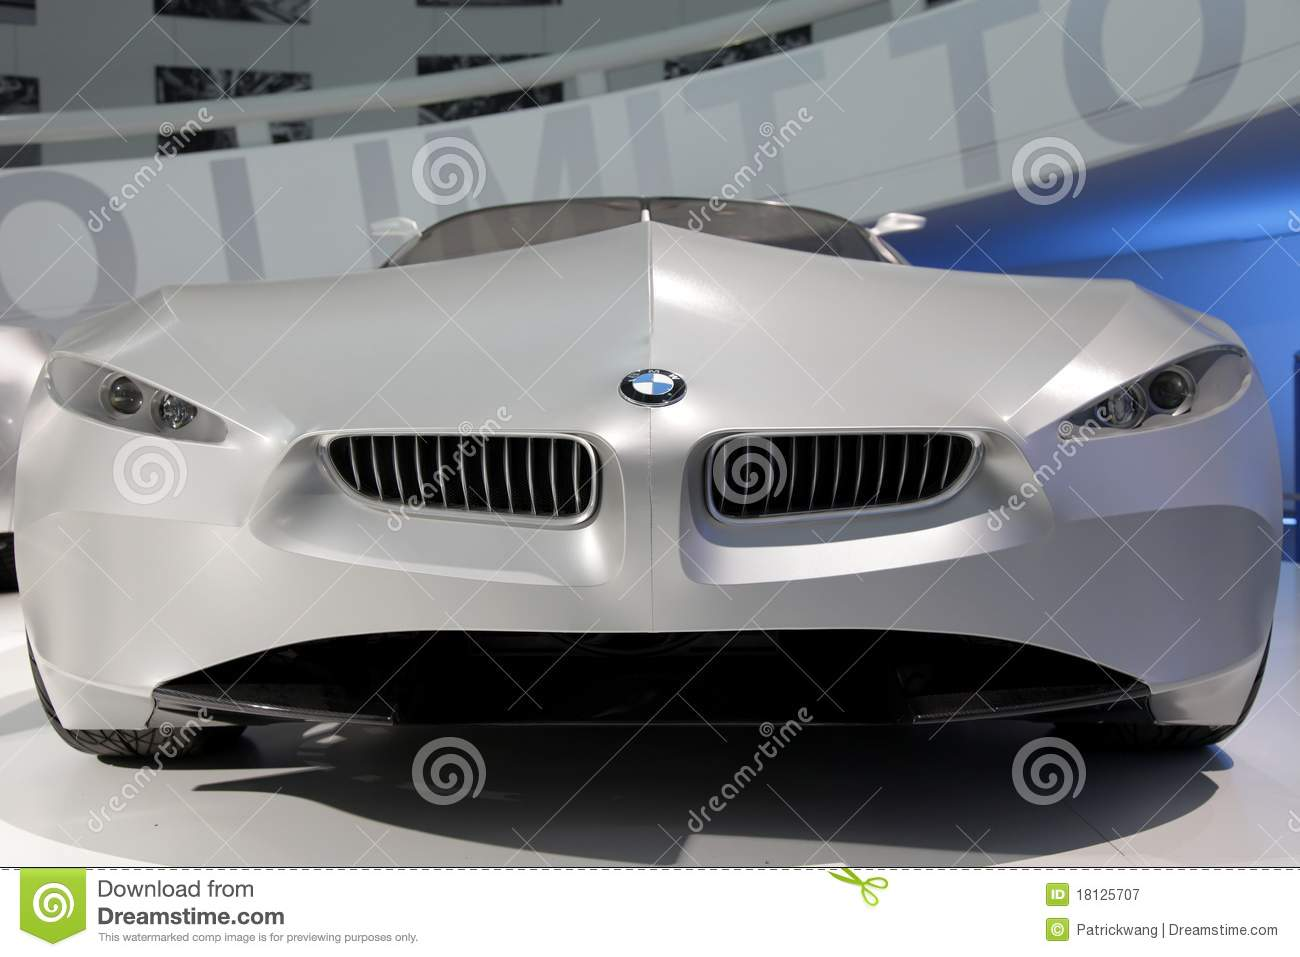 Bmw Concept Car Gina Editorial Photography Image Of Steel 18125707